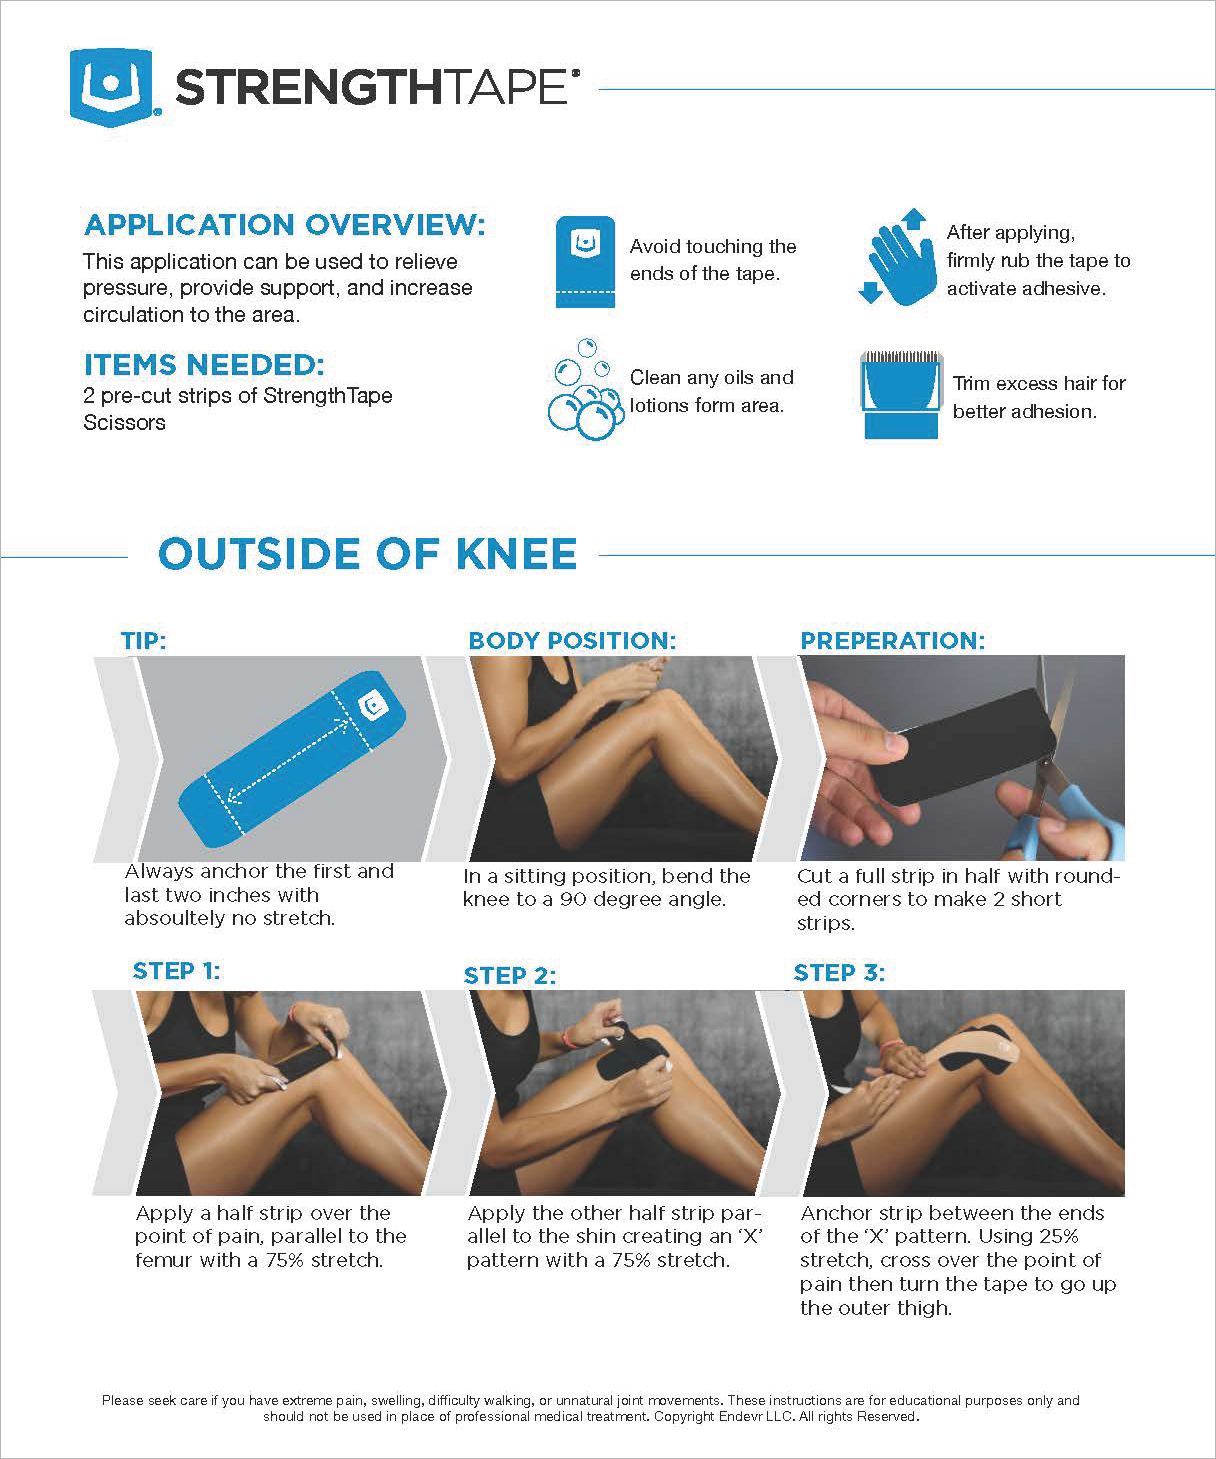 StrengthTape Outer Knee Taping Instructions